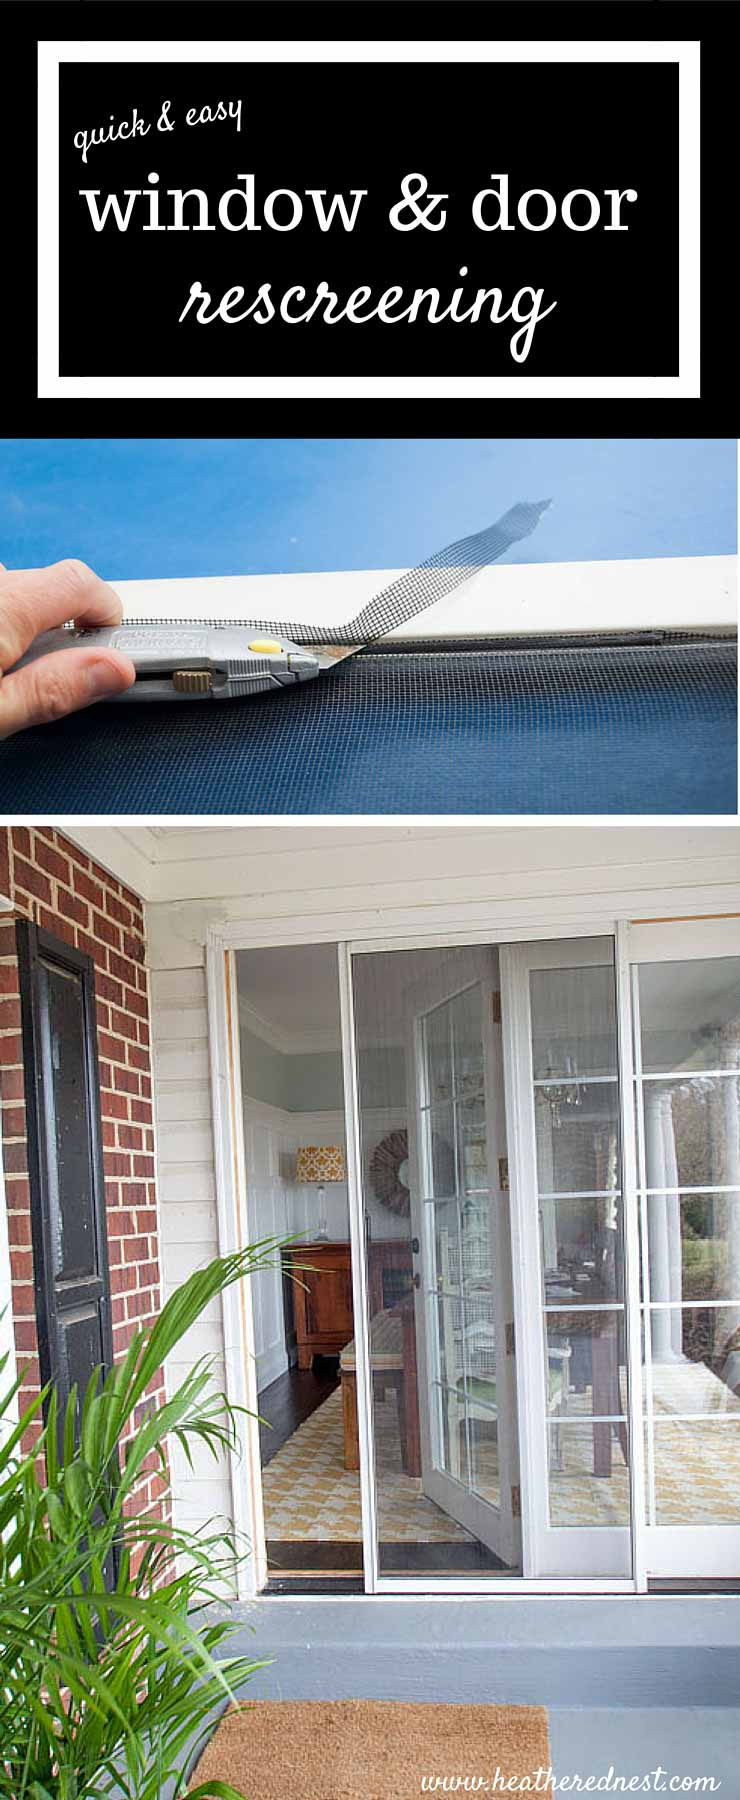 DIY window and door rescreening is EASY, QUICK & can save you a bundle of $$! We'll walk you through it. GOTTA TRY THIS ASAP!! from www.heatherednest.com